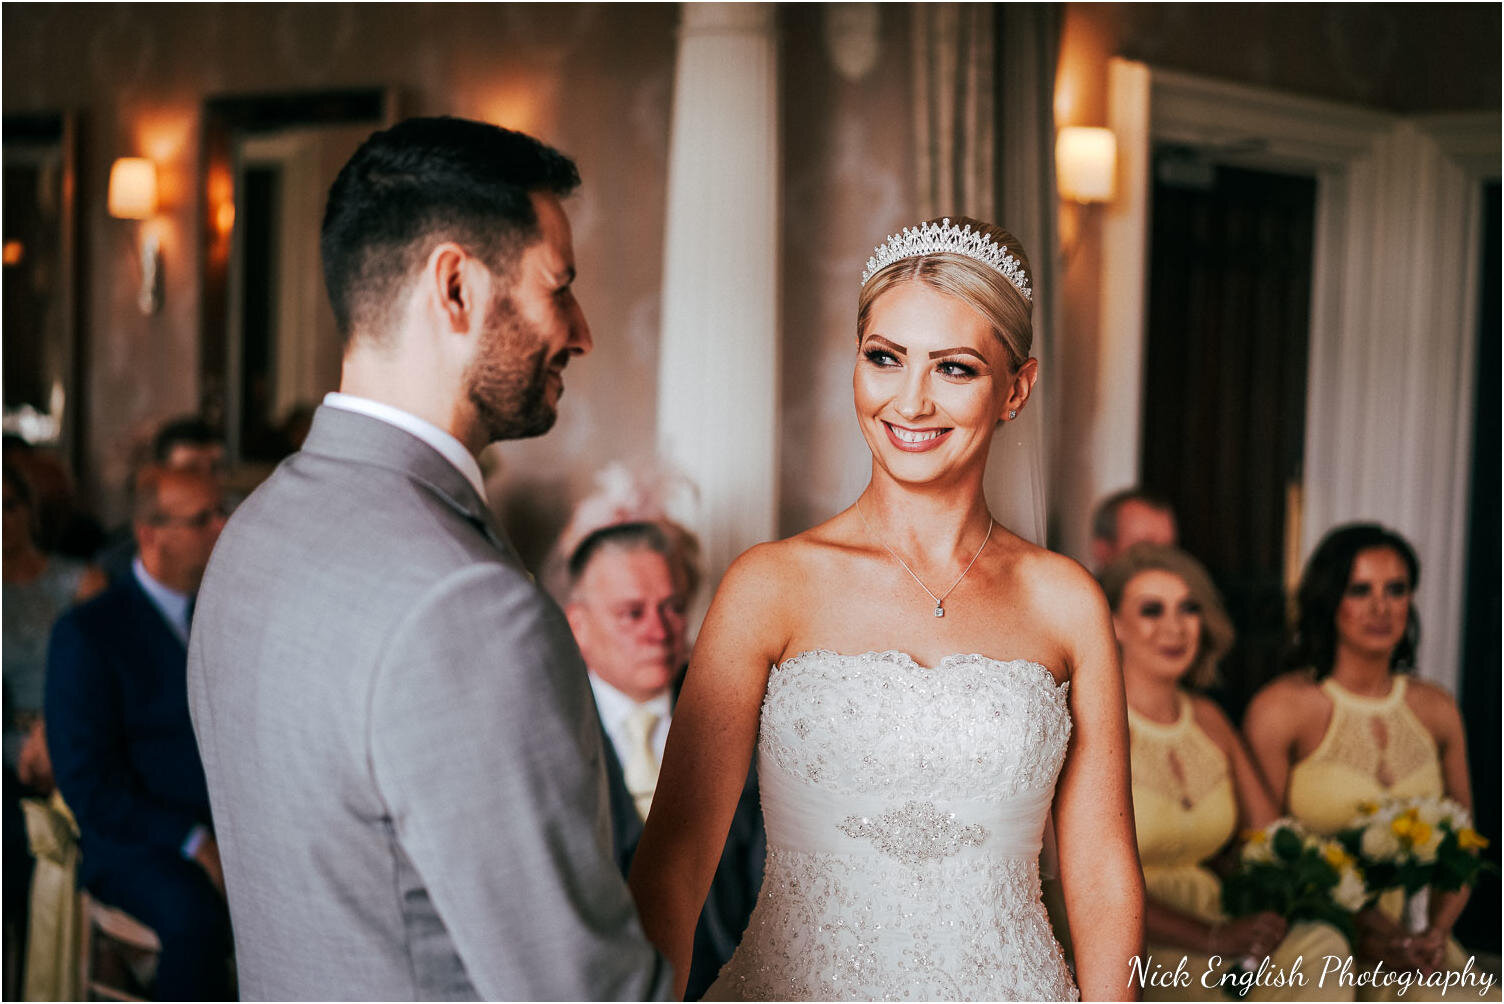 Falcon_Manor_Yorkshire_Wedding_Photographer-44.jpg